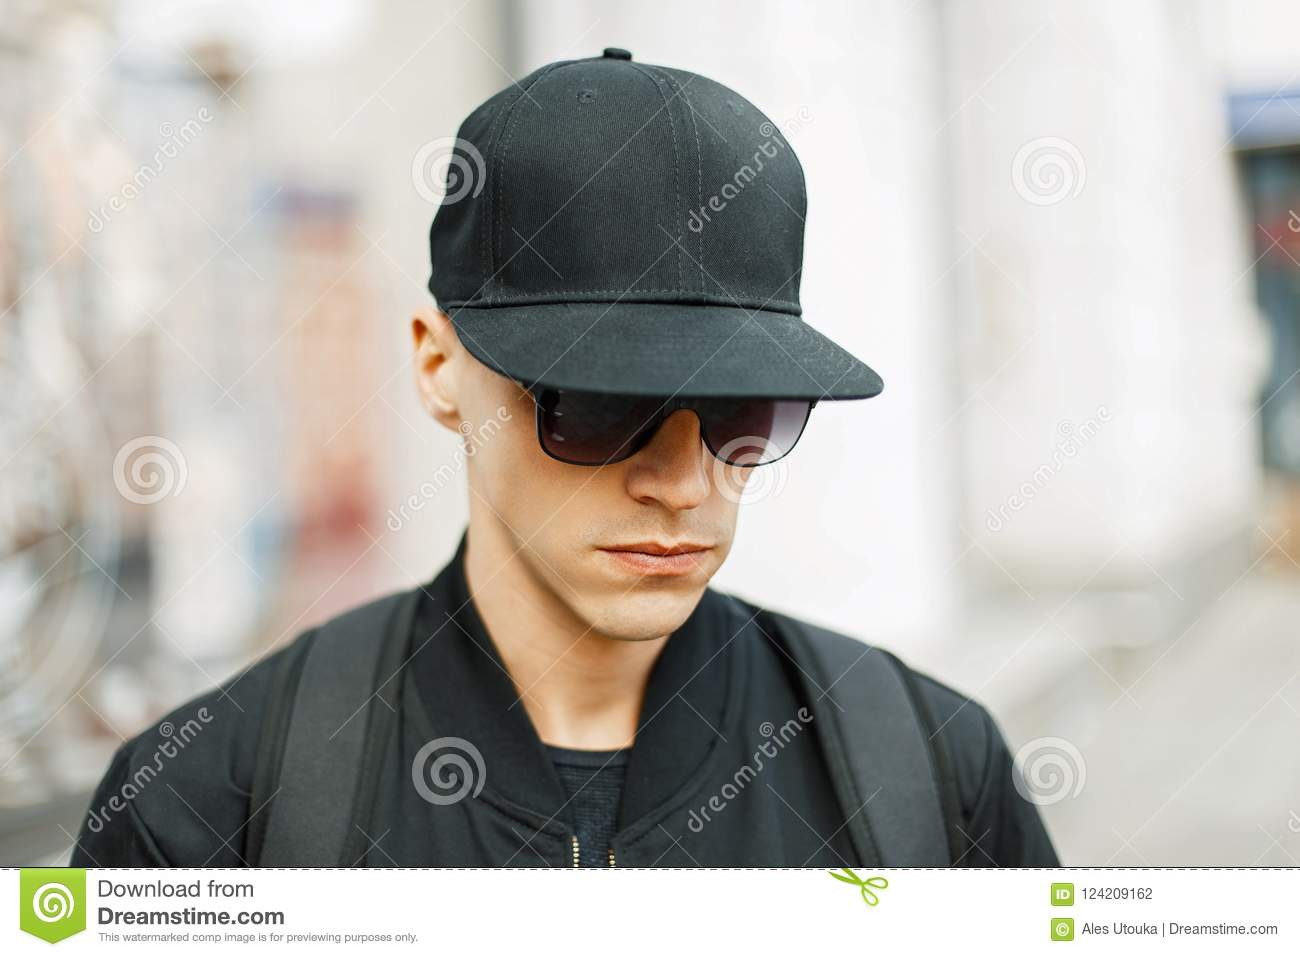 Handsome Guy In A Black Baseball Cap And Stylish Black Clothes Stock ... 73ea8dbc64e